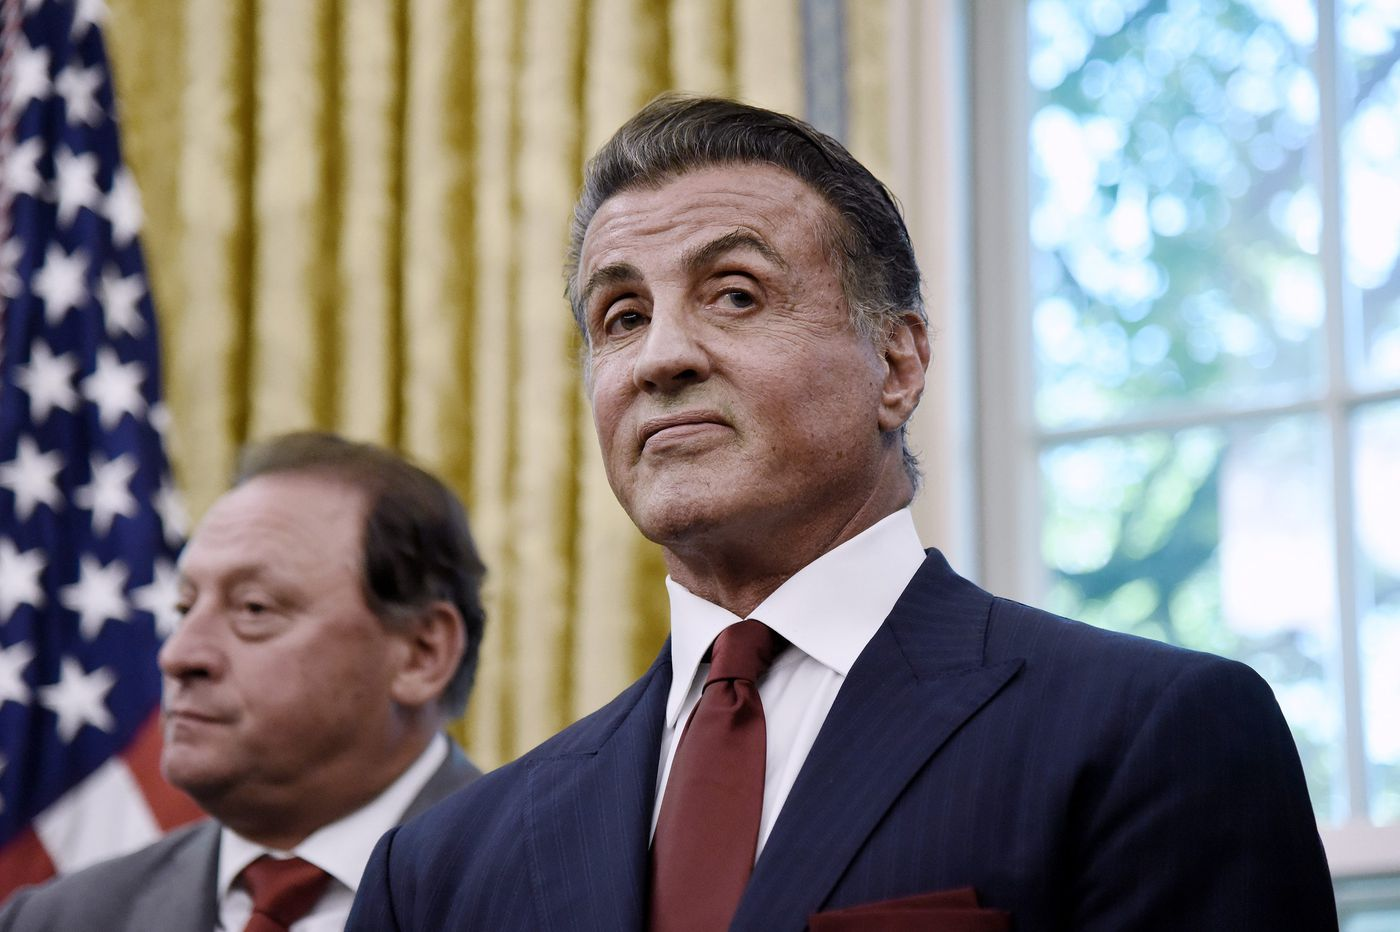 Sylvester Stallone under investigation in Los Angeles for alleged sex crime